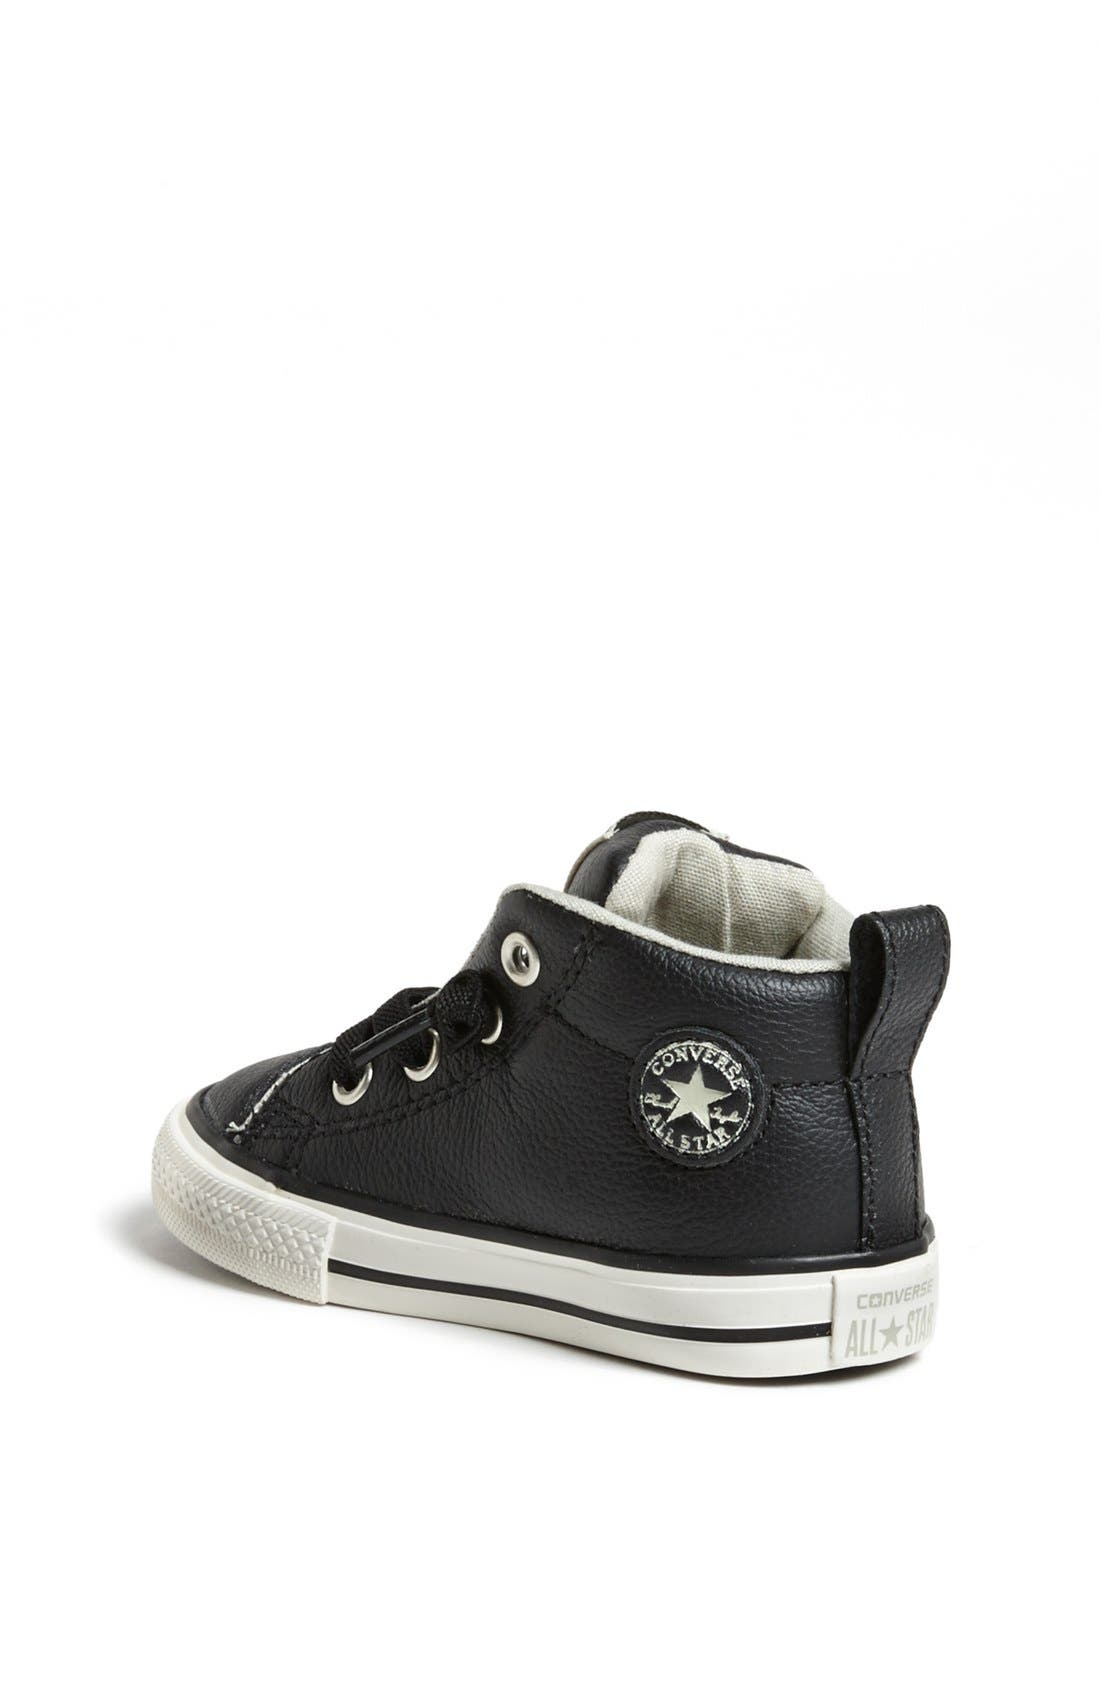 Chuck Taylor<sup>®</sup> All Star<sup>®</sup> 'CT AS Street' Leather Slip-On Sneaker,                             Alternate thumbnail 2, color,                             001